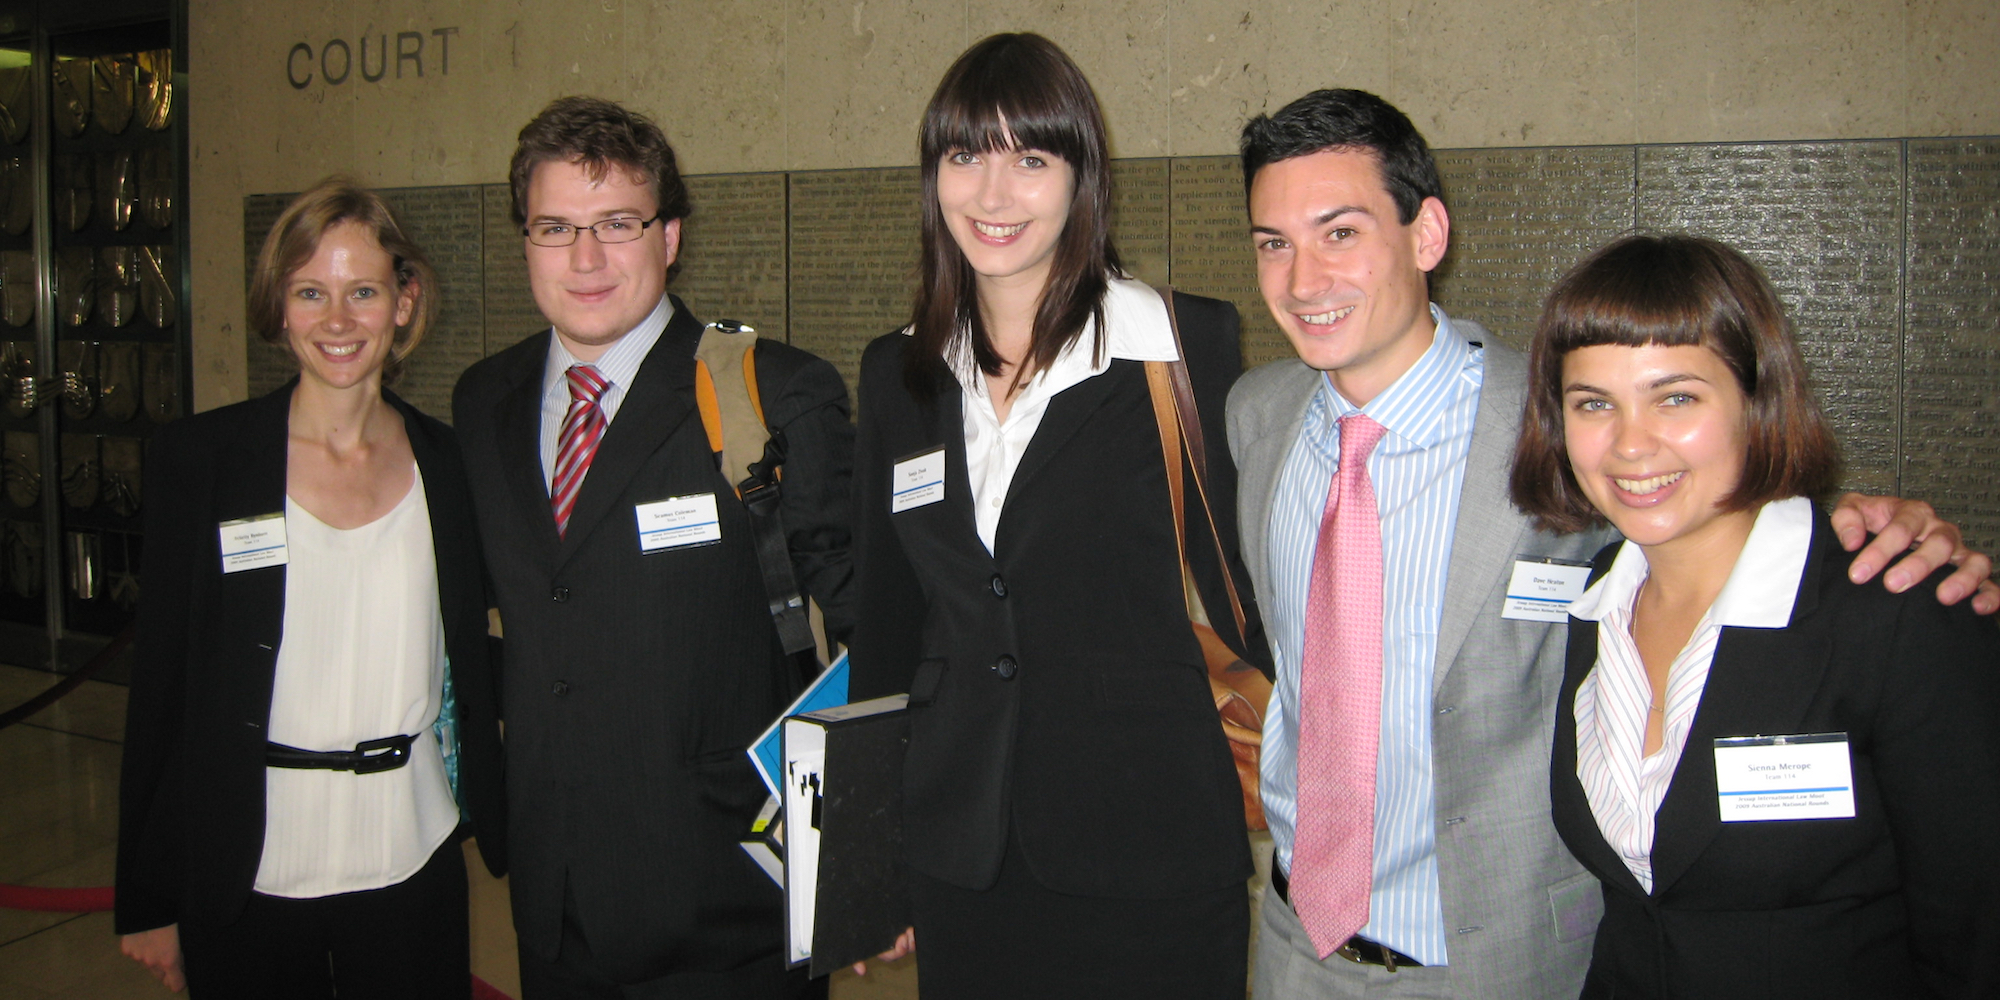 The Jessup moot team